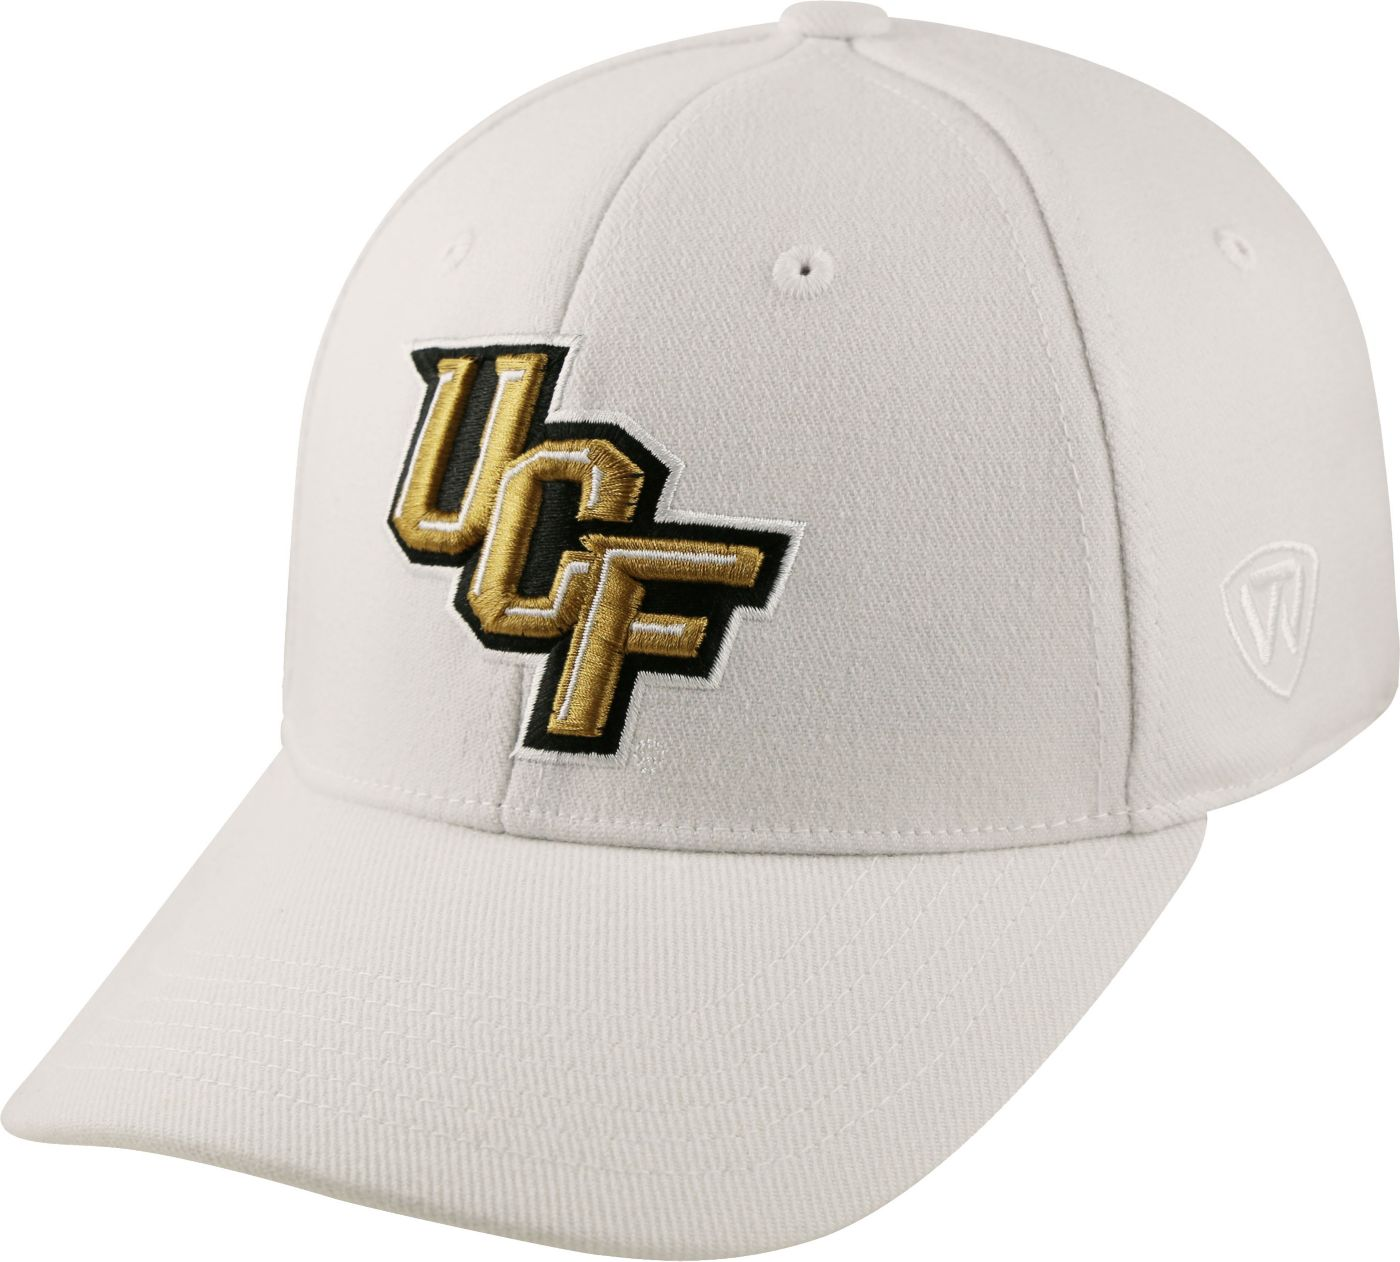 Top of the World Men's UCF Knights Premium Collection M-Fit White Hat